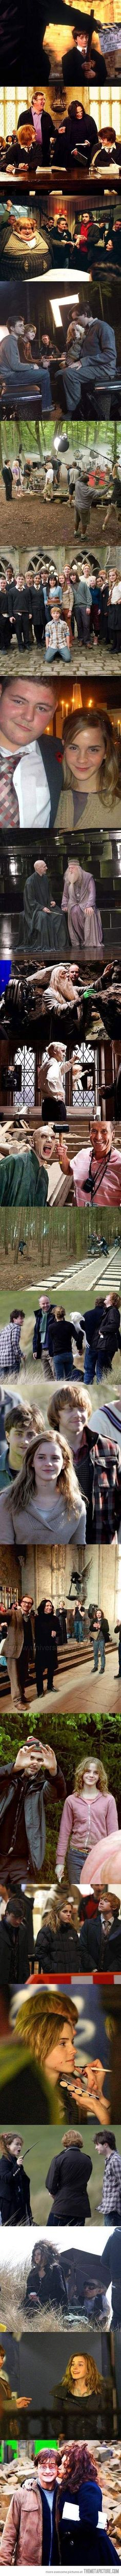 Harry Potter behind the scenes <3: